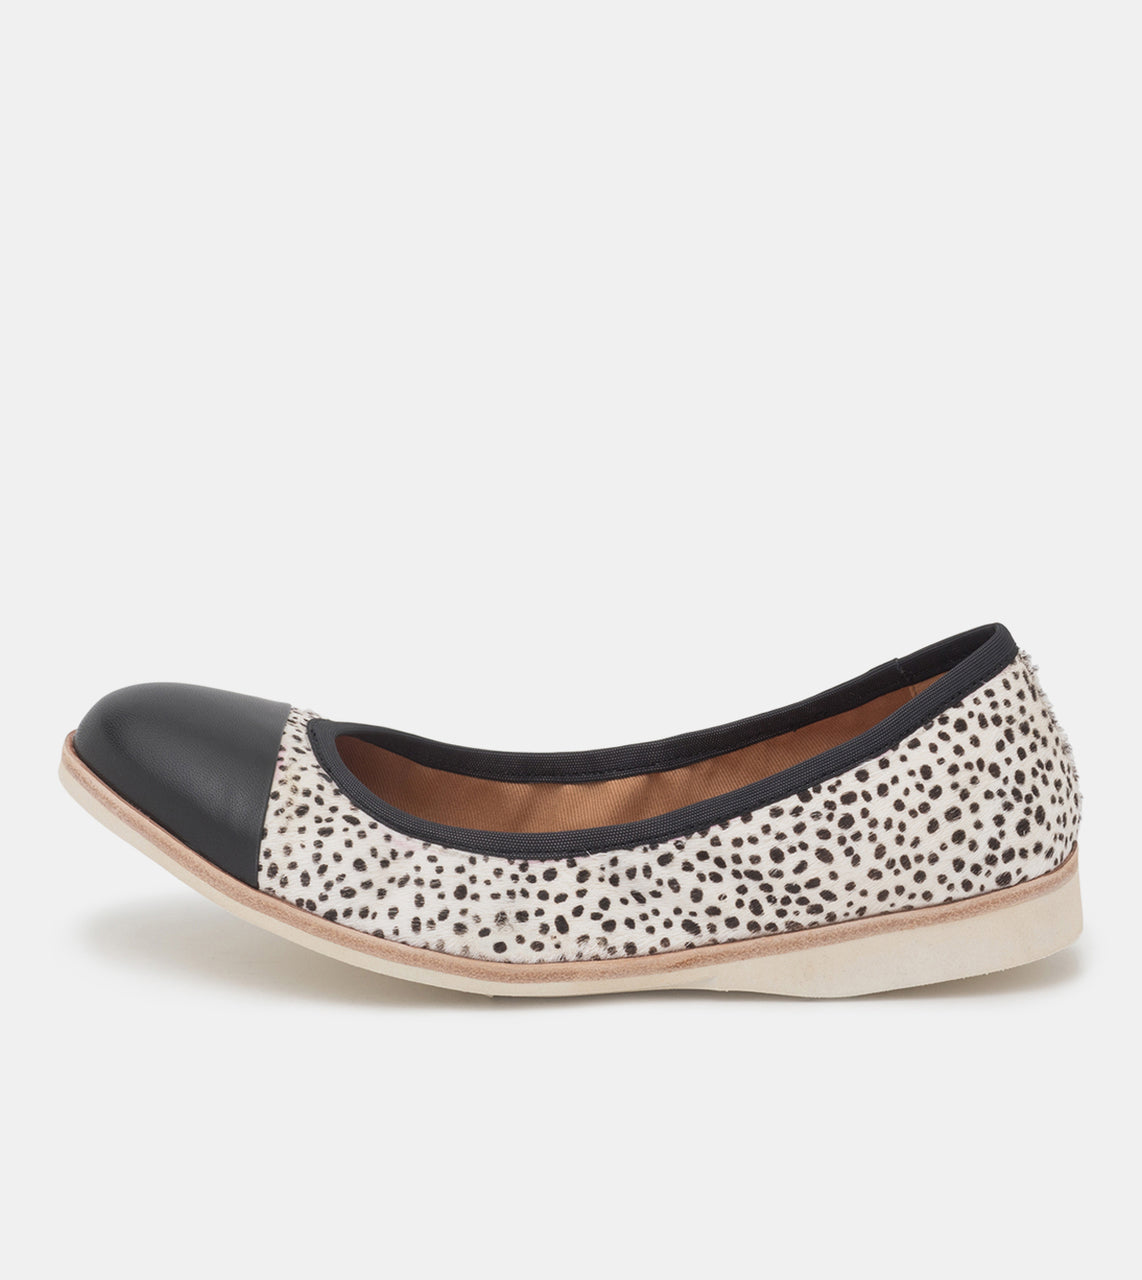 Ballet Snow Leopard/Black Toe